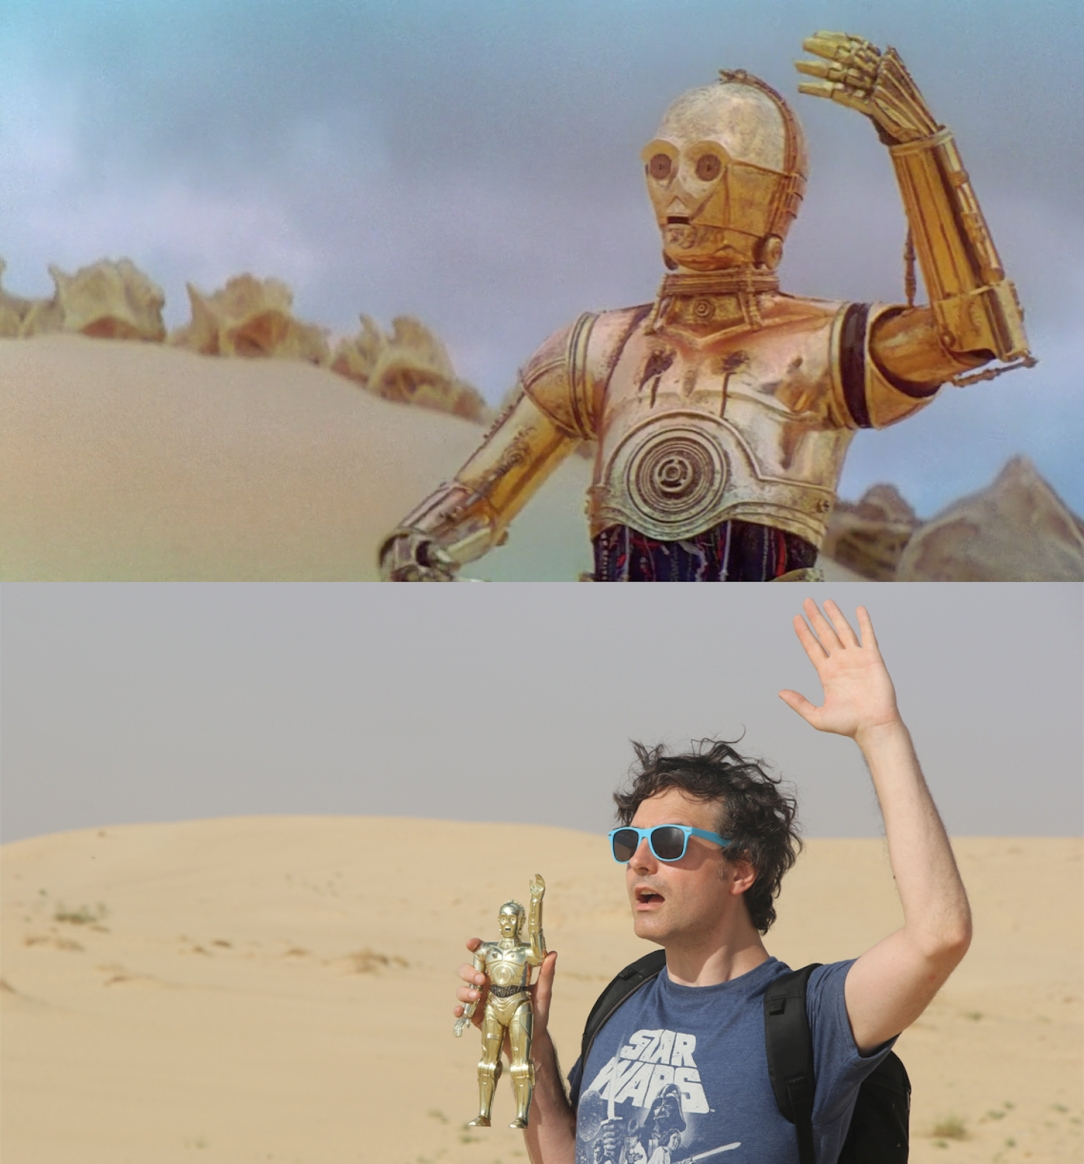 Star Wars Locations: The Krayt Dragon and C-3PO Escape Pod Landing Site near Tozeur, Tunisia